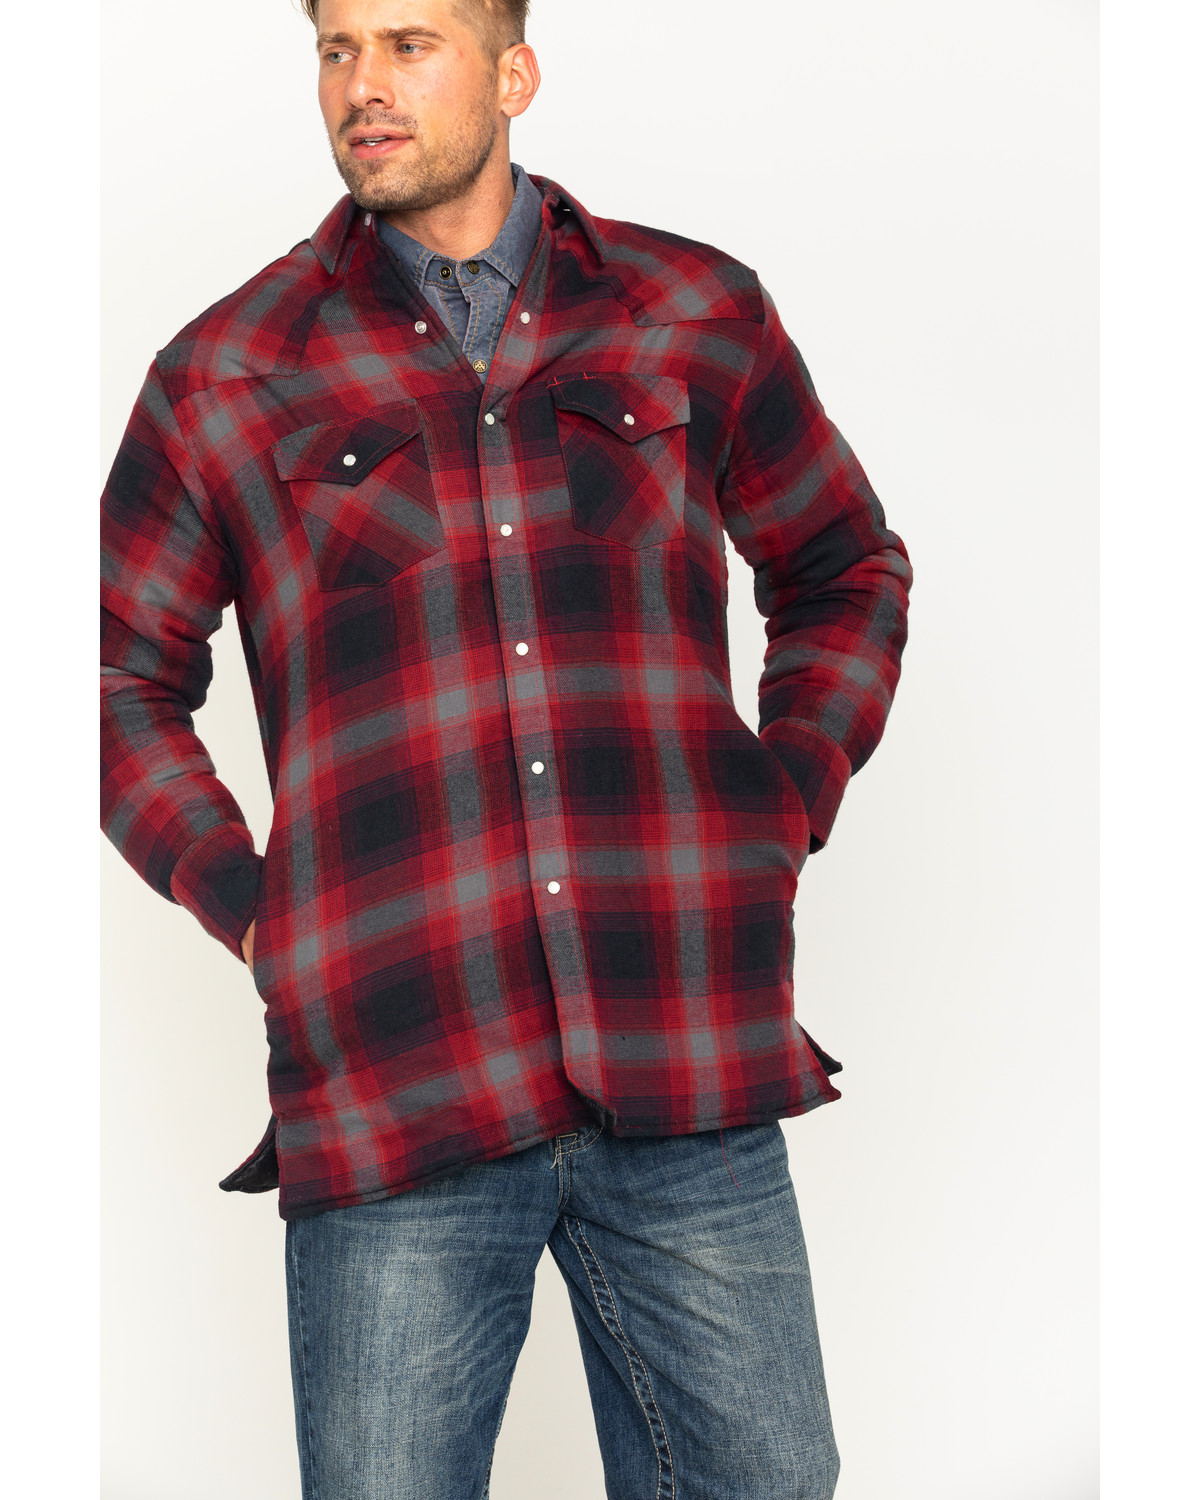 taylor pin jacket flannel shirt quilt men s quilted david